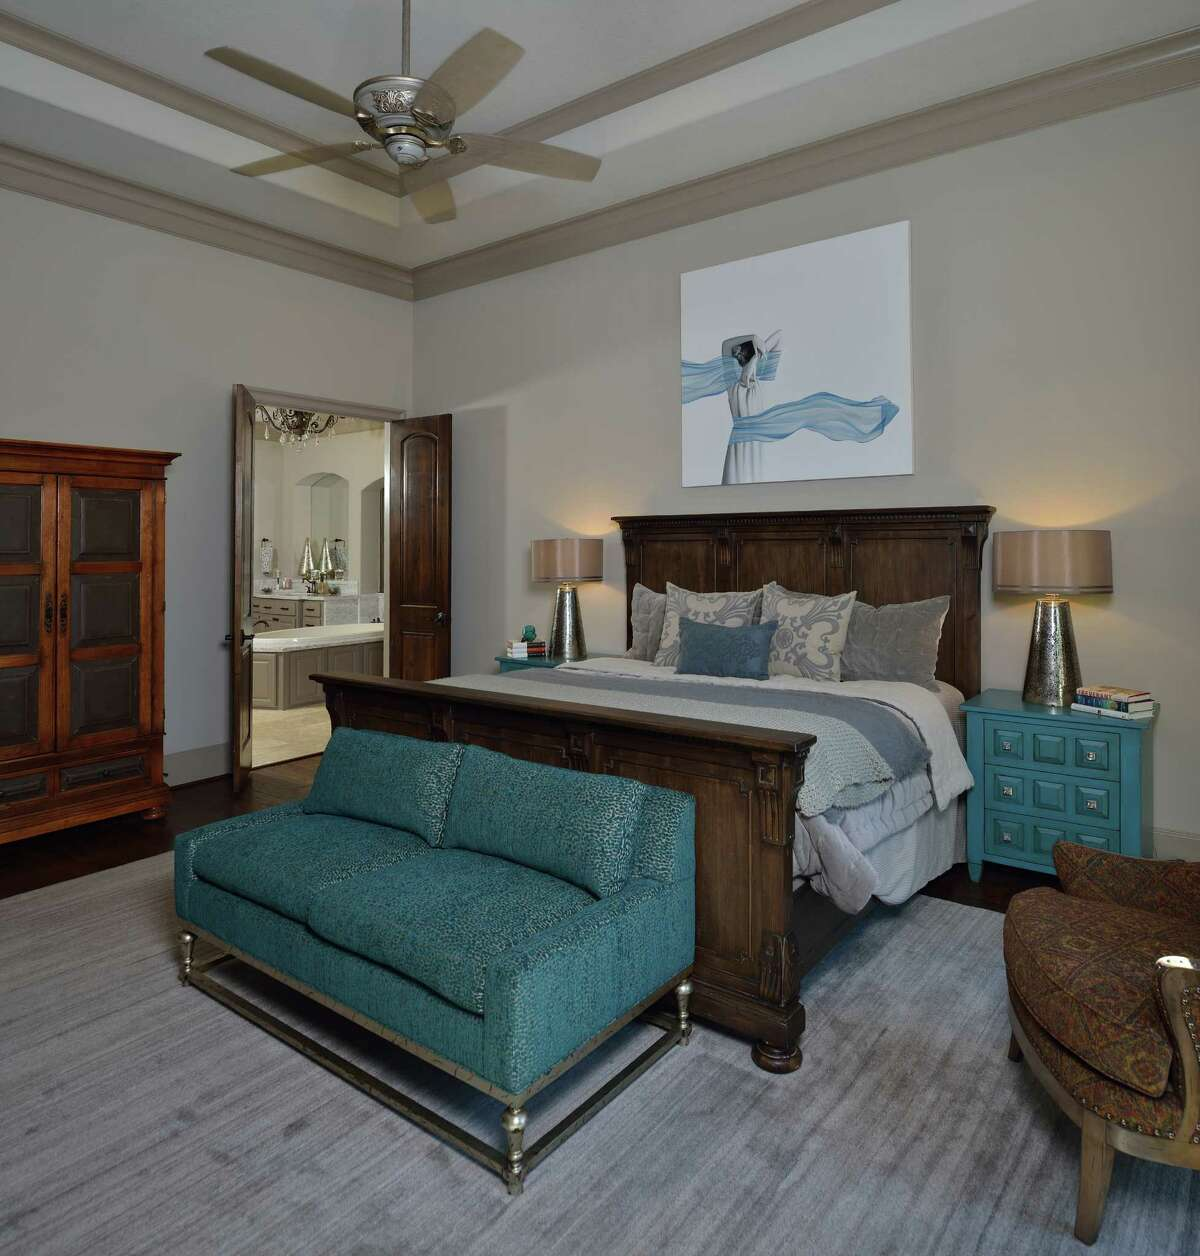 The master bedroomfeatures neutral walls and pops of Shari Ziebarth's favorite color, turquoise.